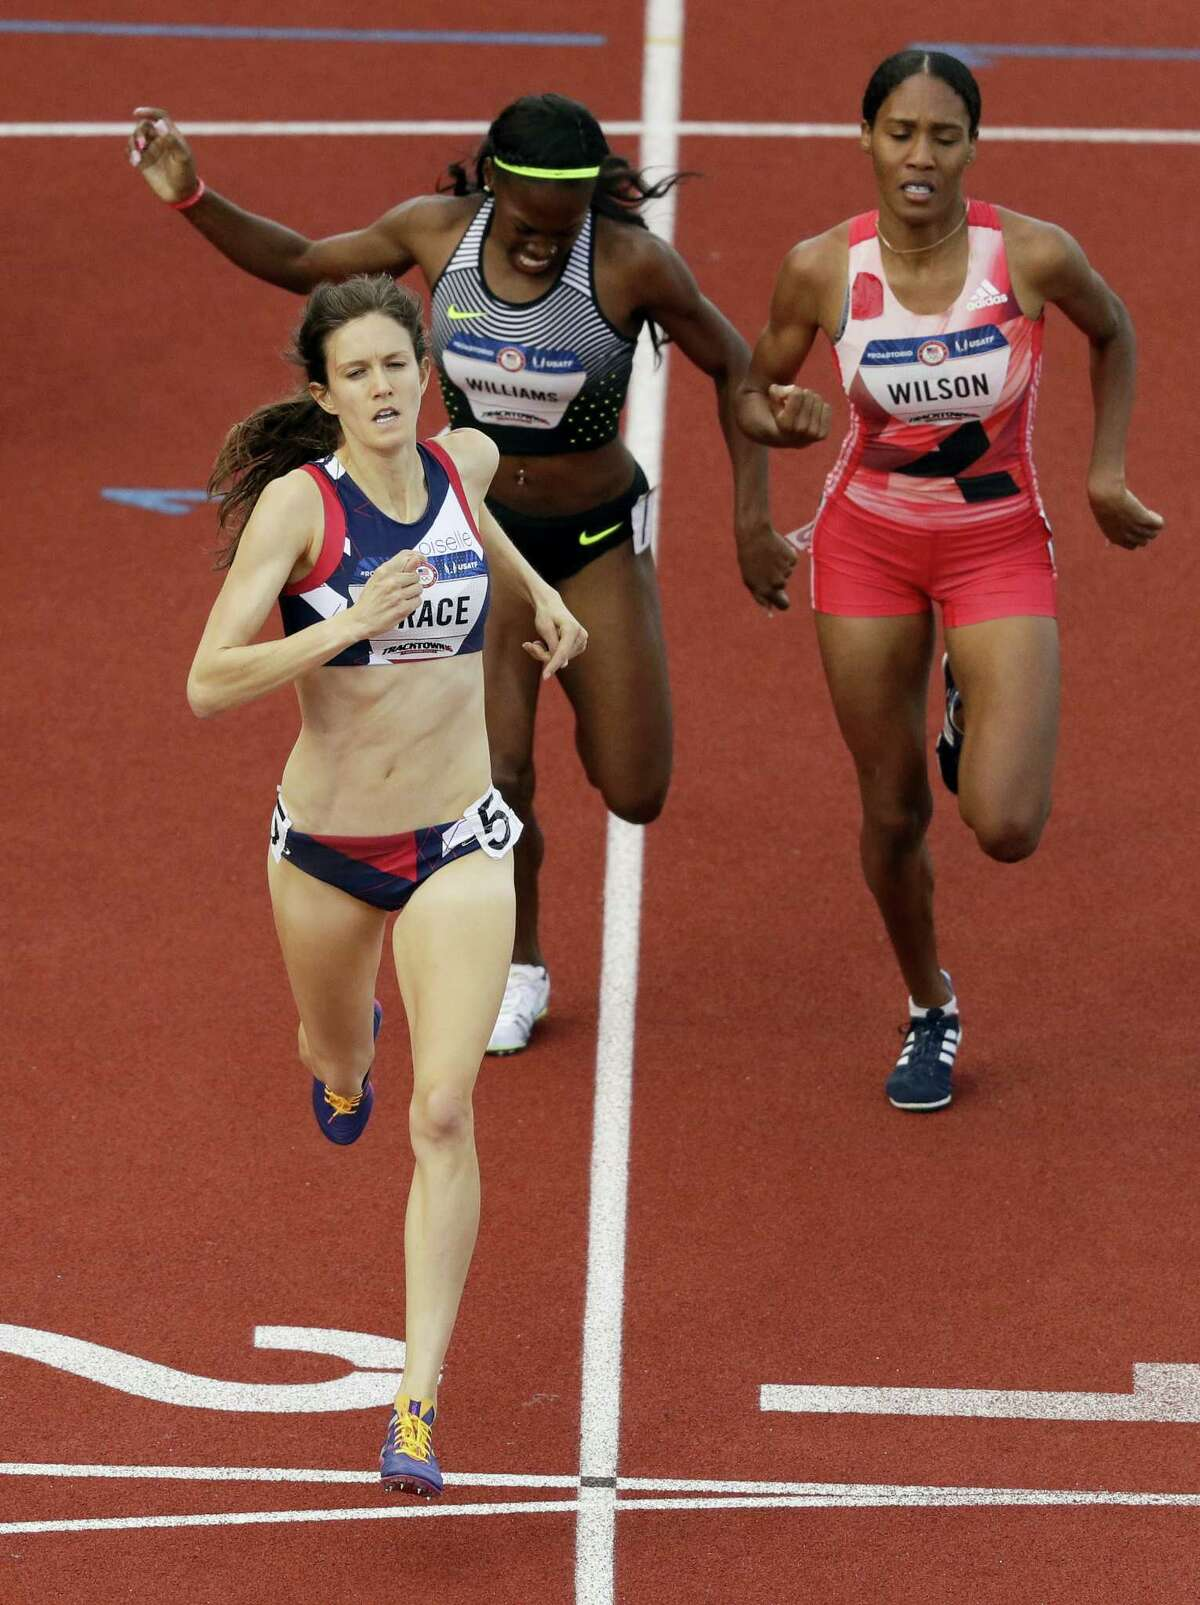 CHARLIE RIEDEL - THE ASSOCIATED PRESS Kate Grace wins the during the women's 800-meter final at the U.S. Olympic Track and Field Trials Monday in Eugene Oregon.